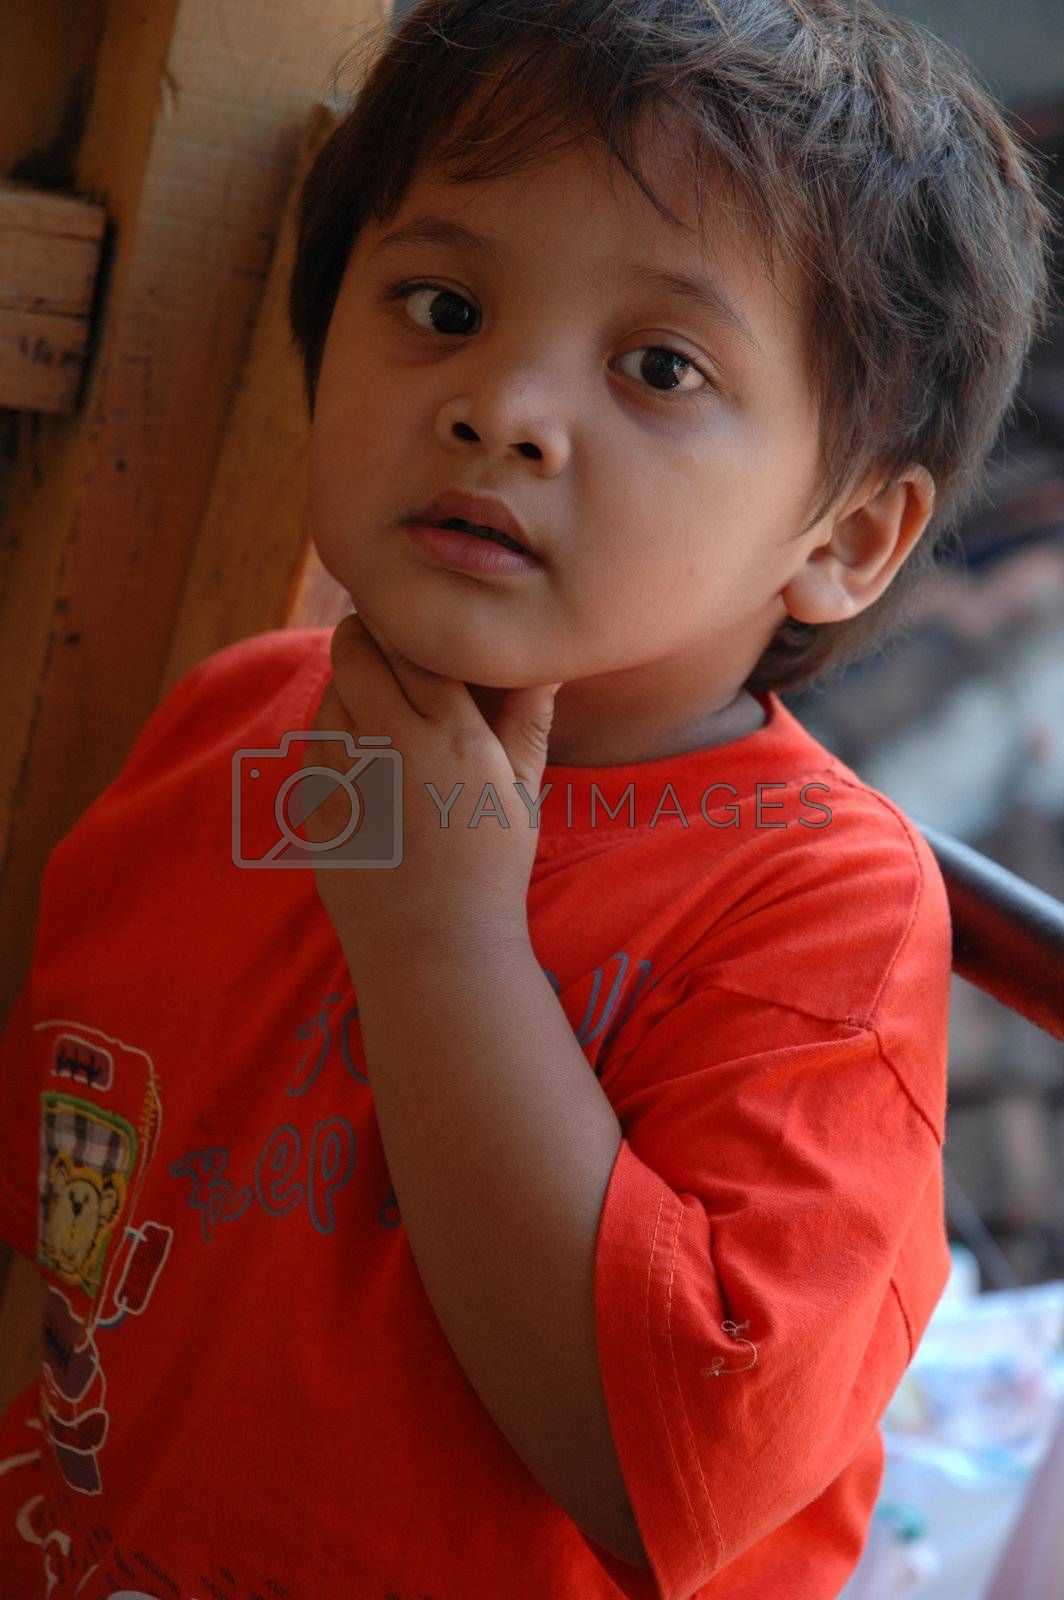 young asian boy with cute and nice face expression